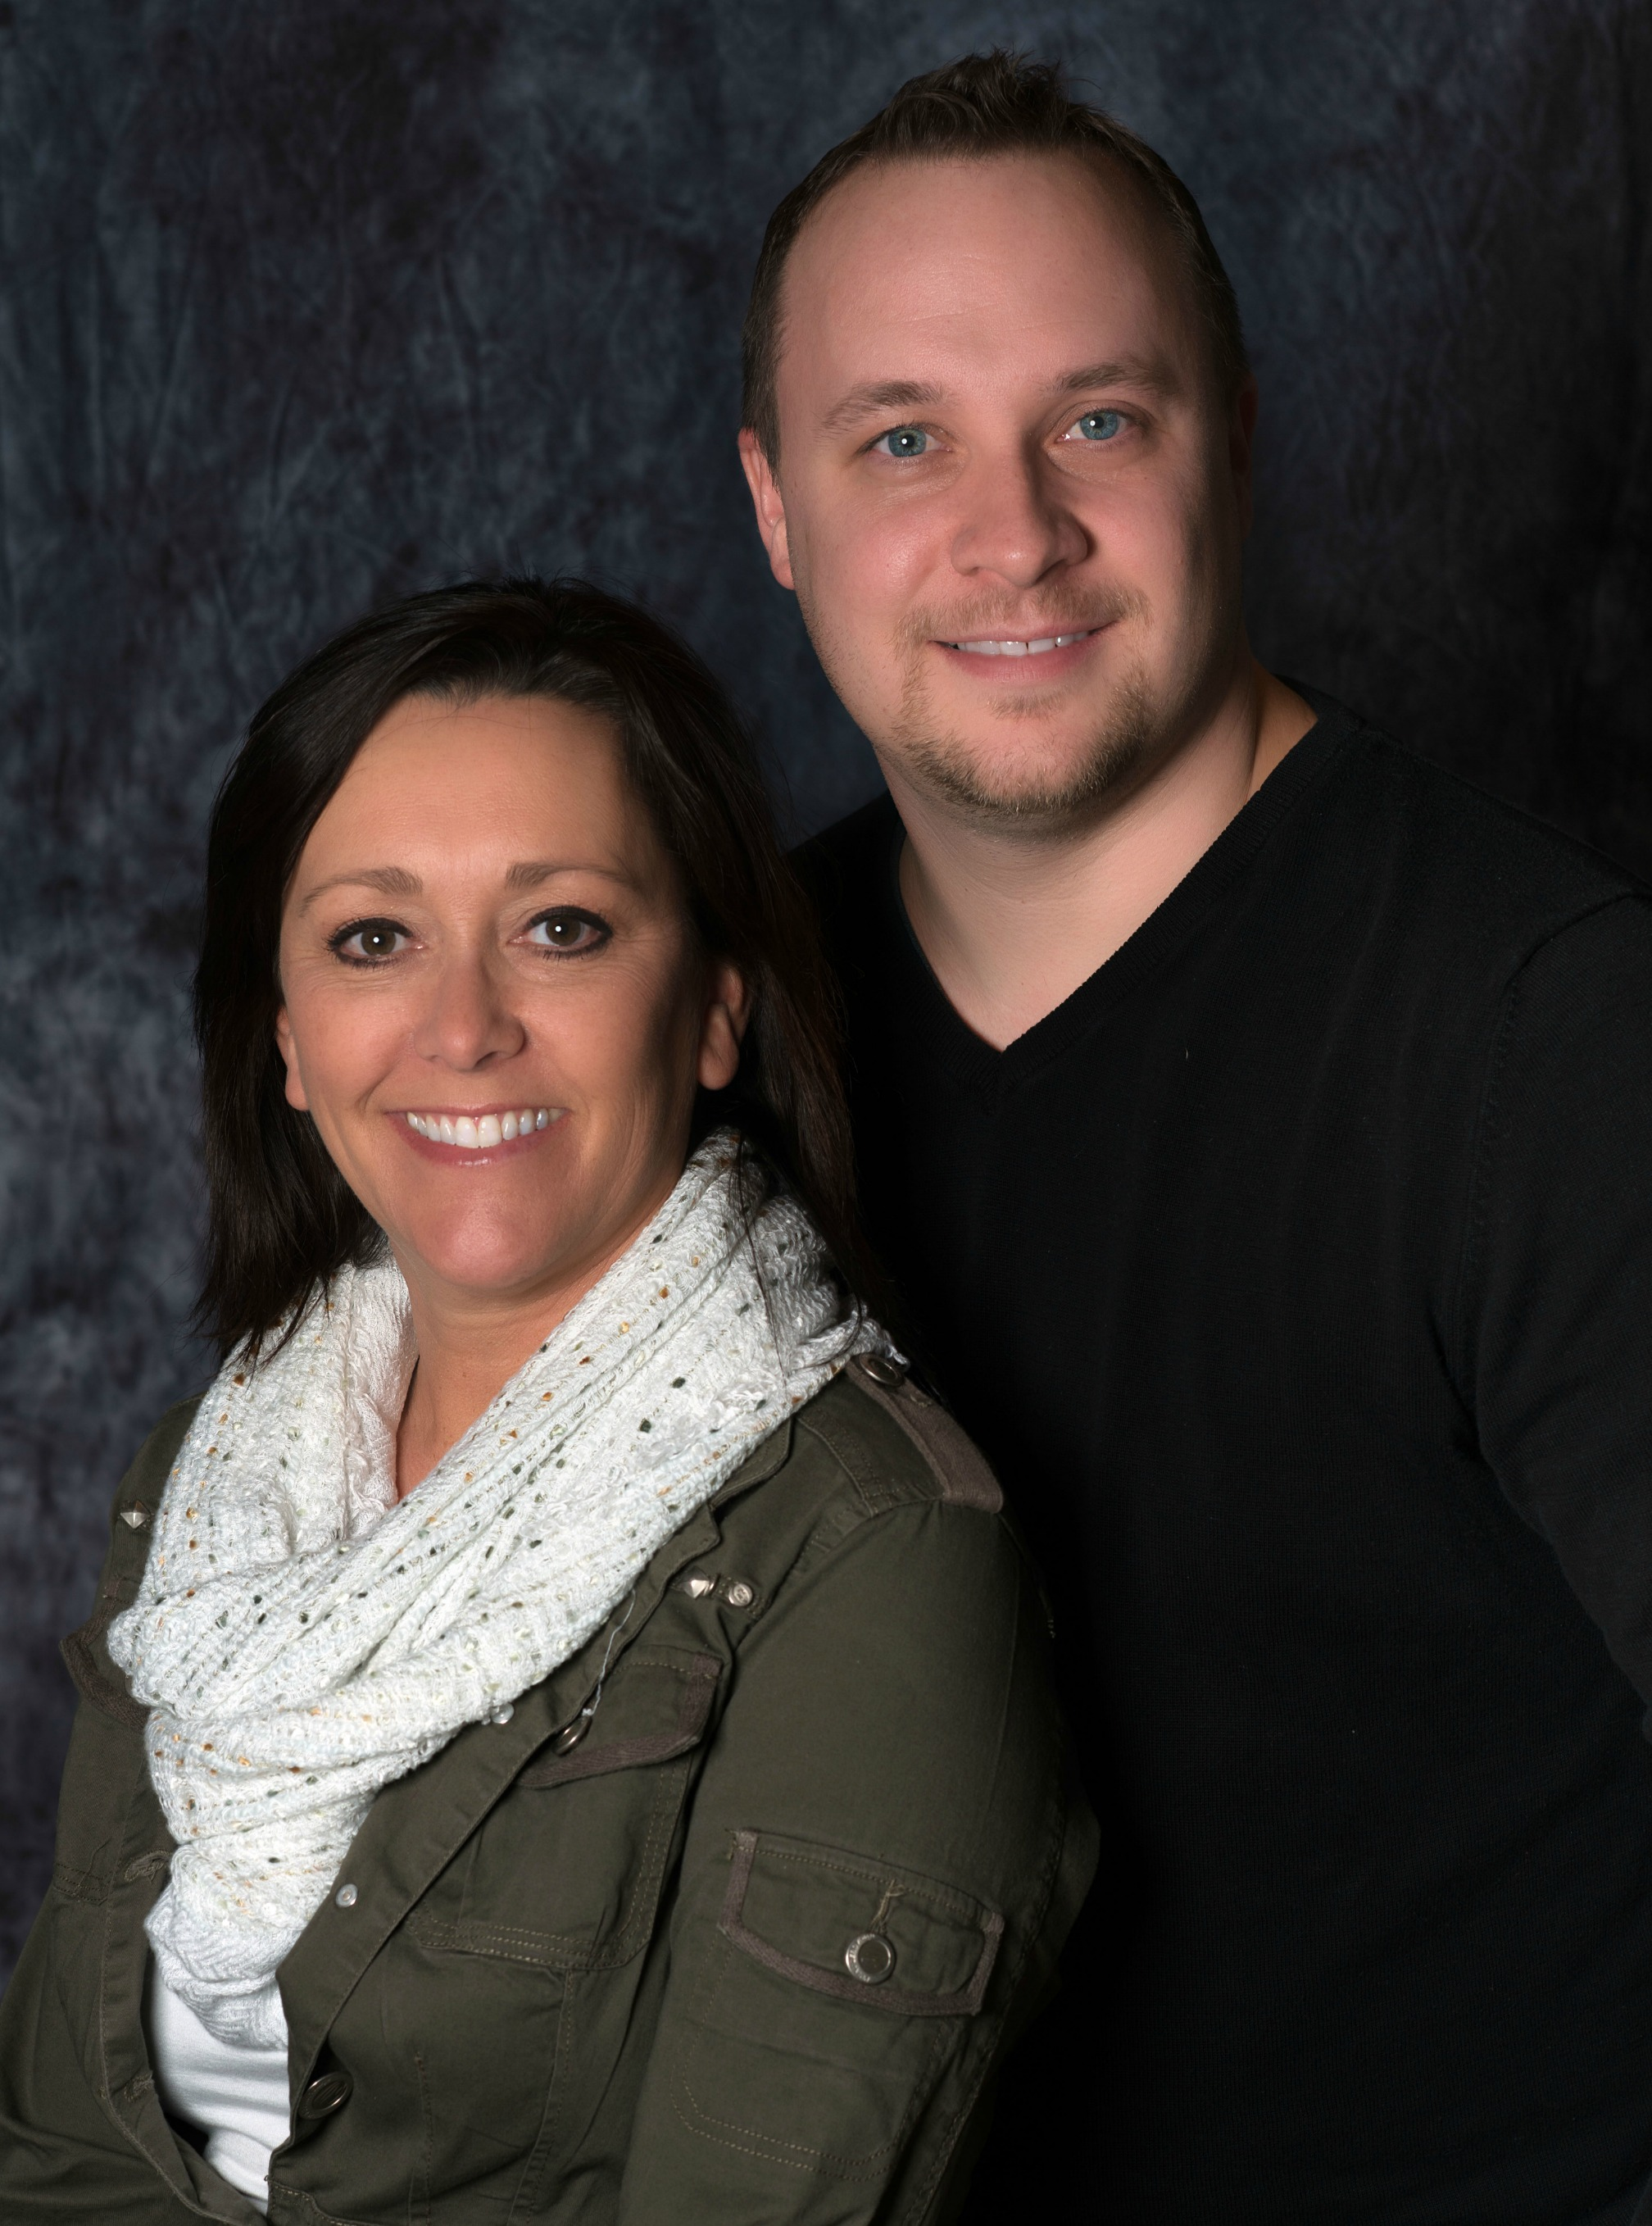 Paul & Heather Konsor - The Konsor Group, REALTORS®, Relocation Specialists  - Monticello, MN